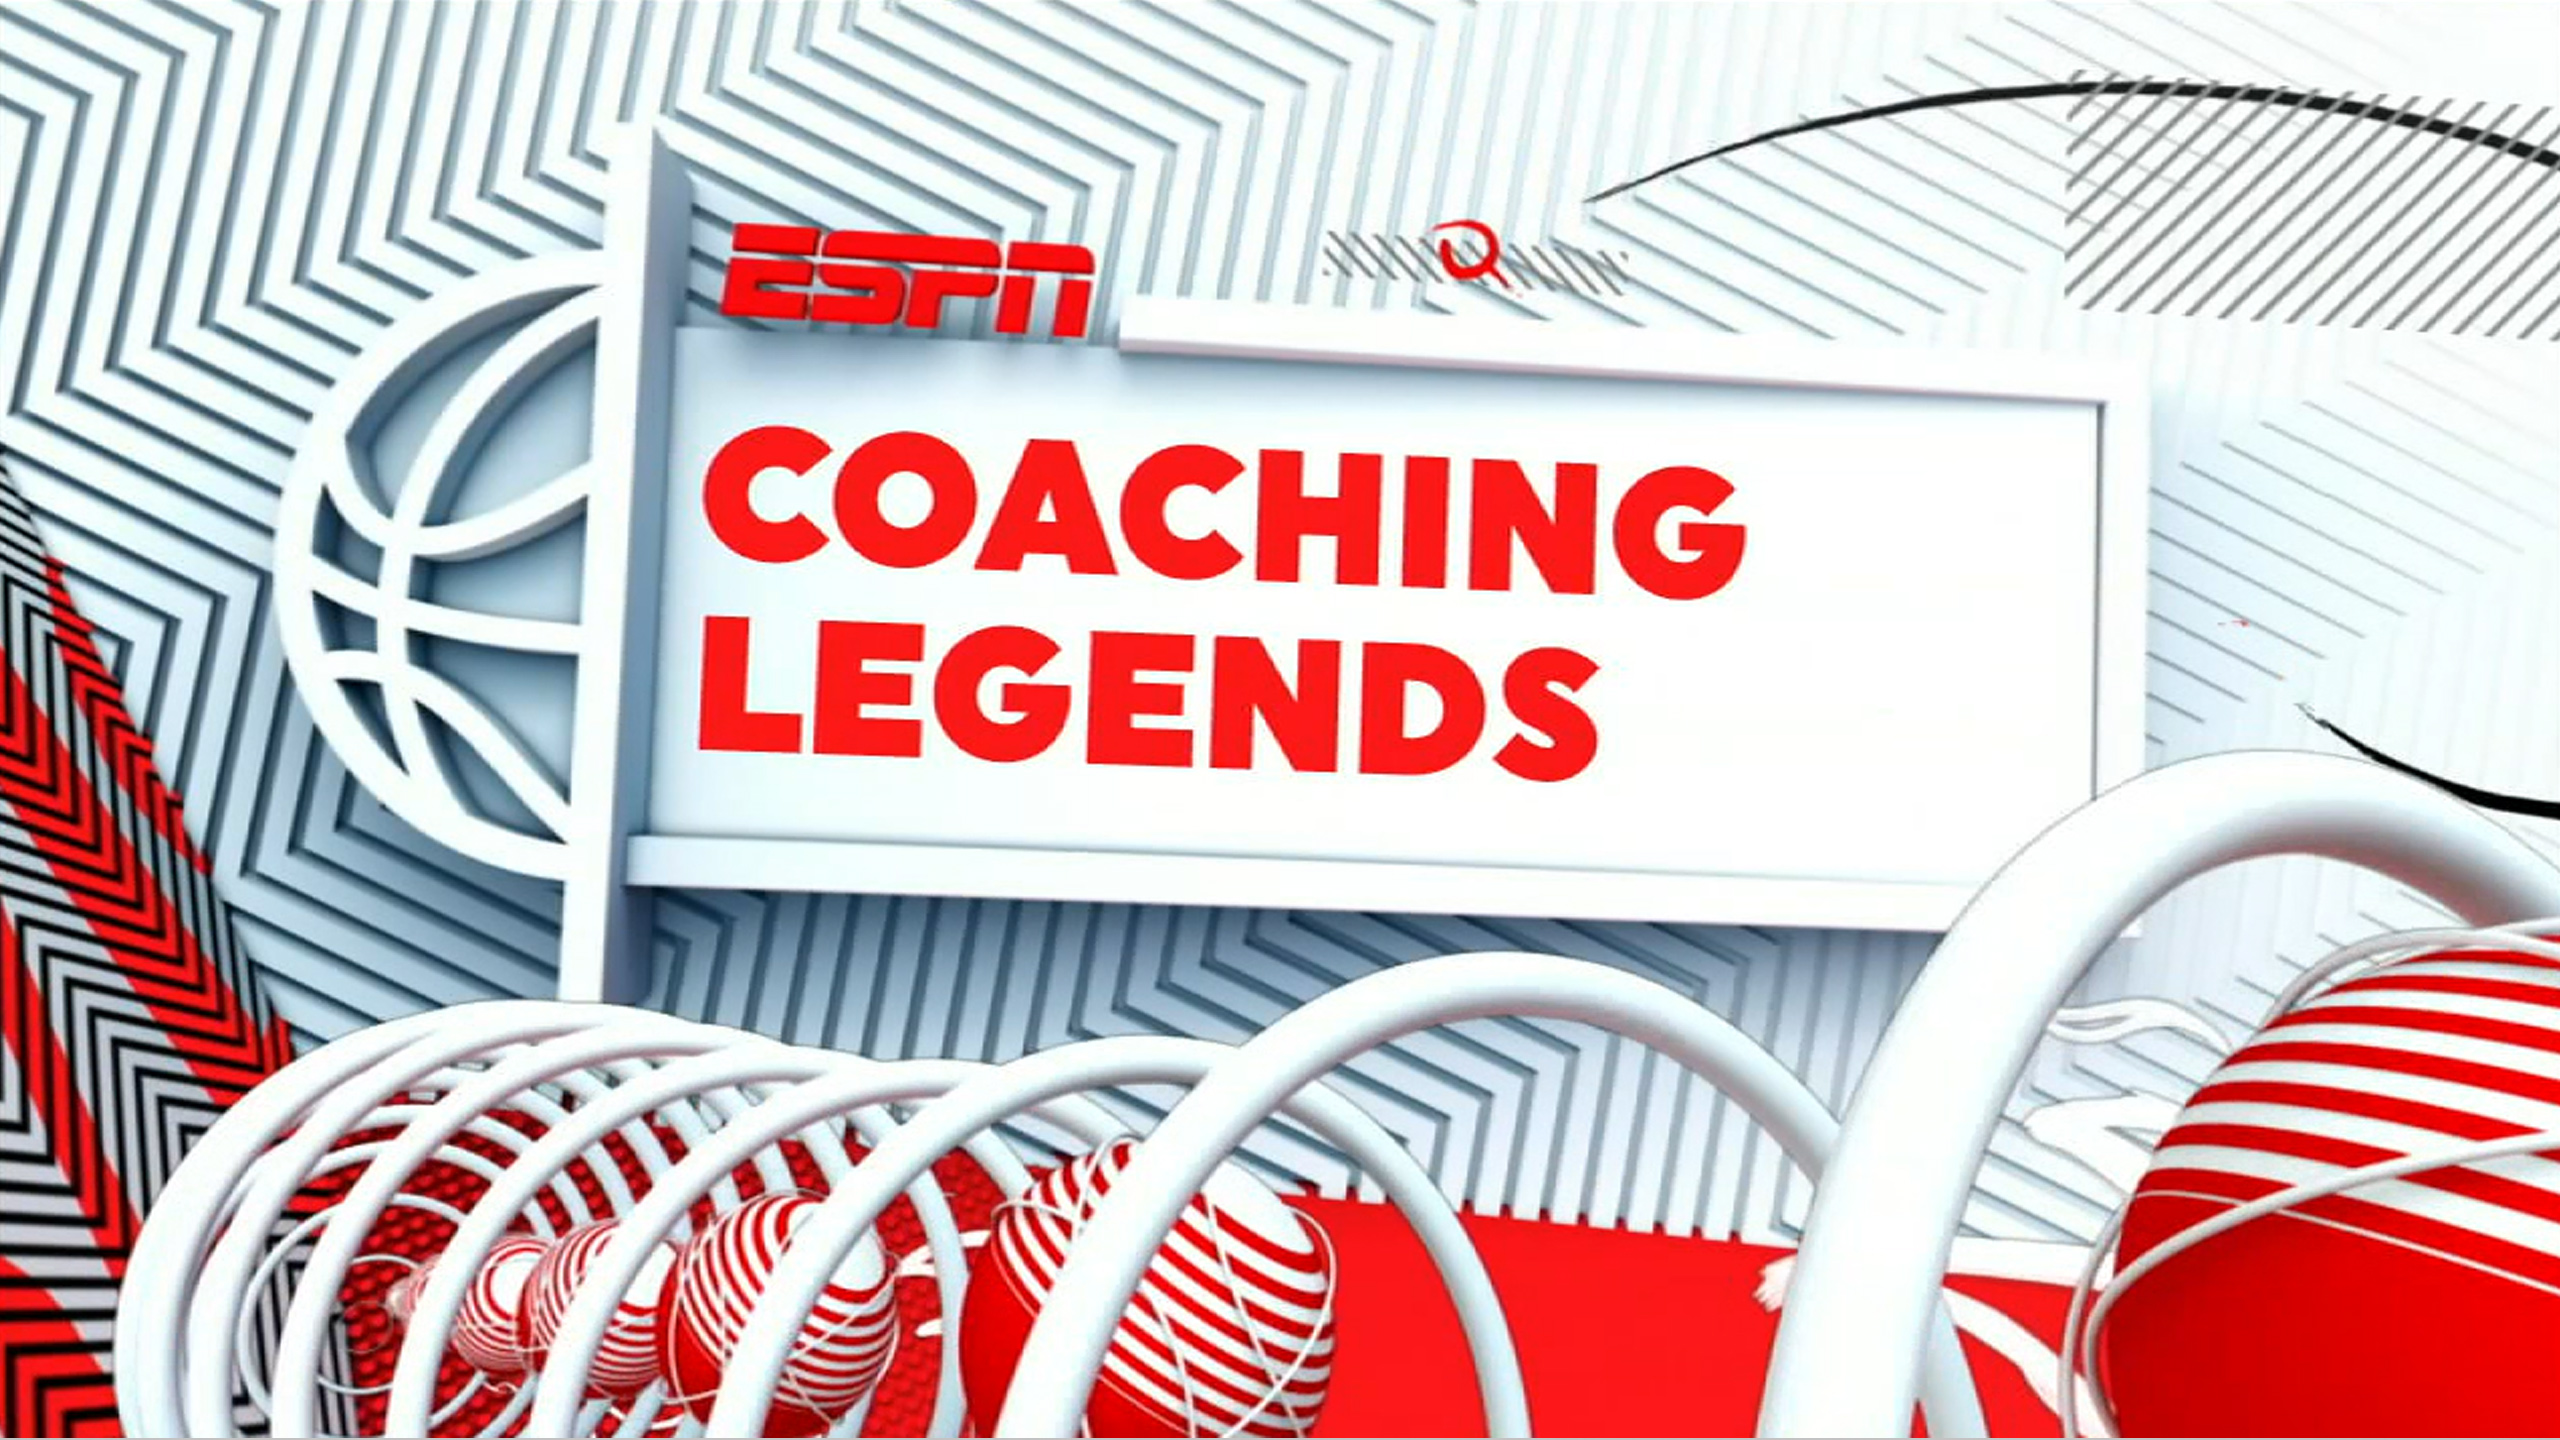 College Basketball Live: Coaching Legends